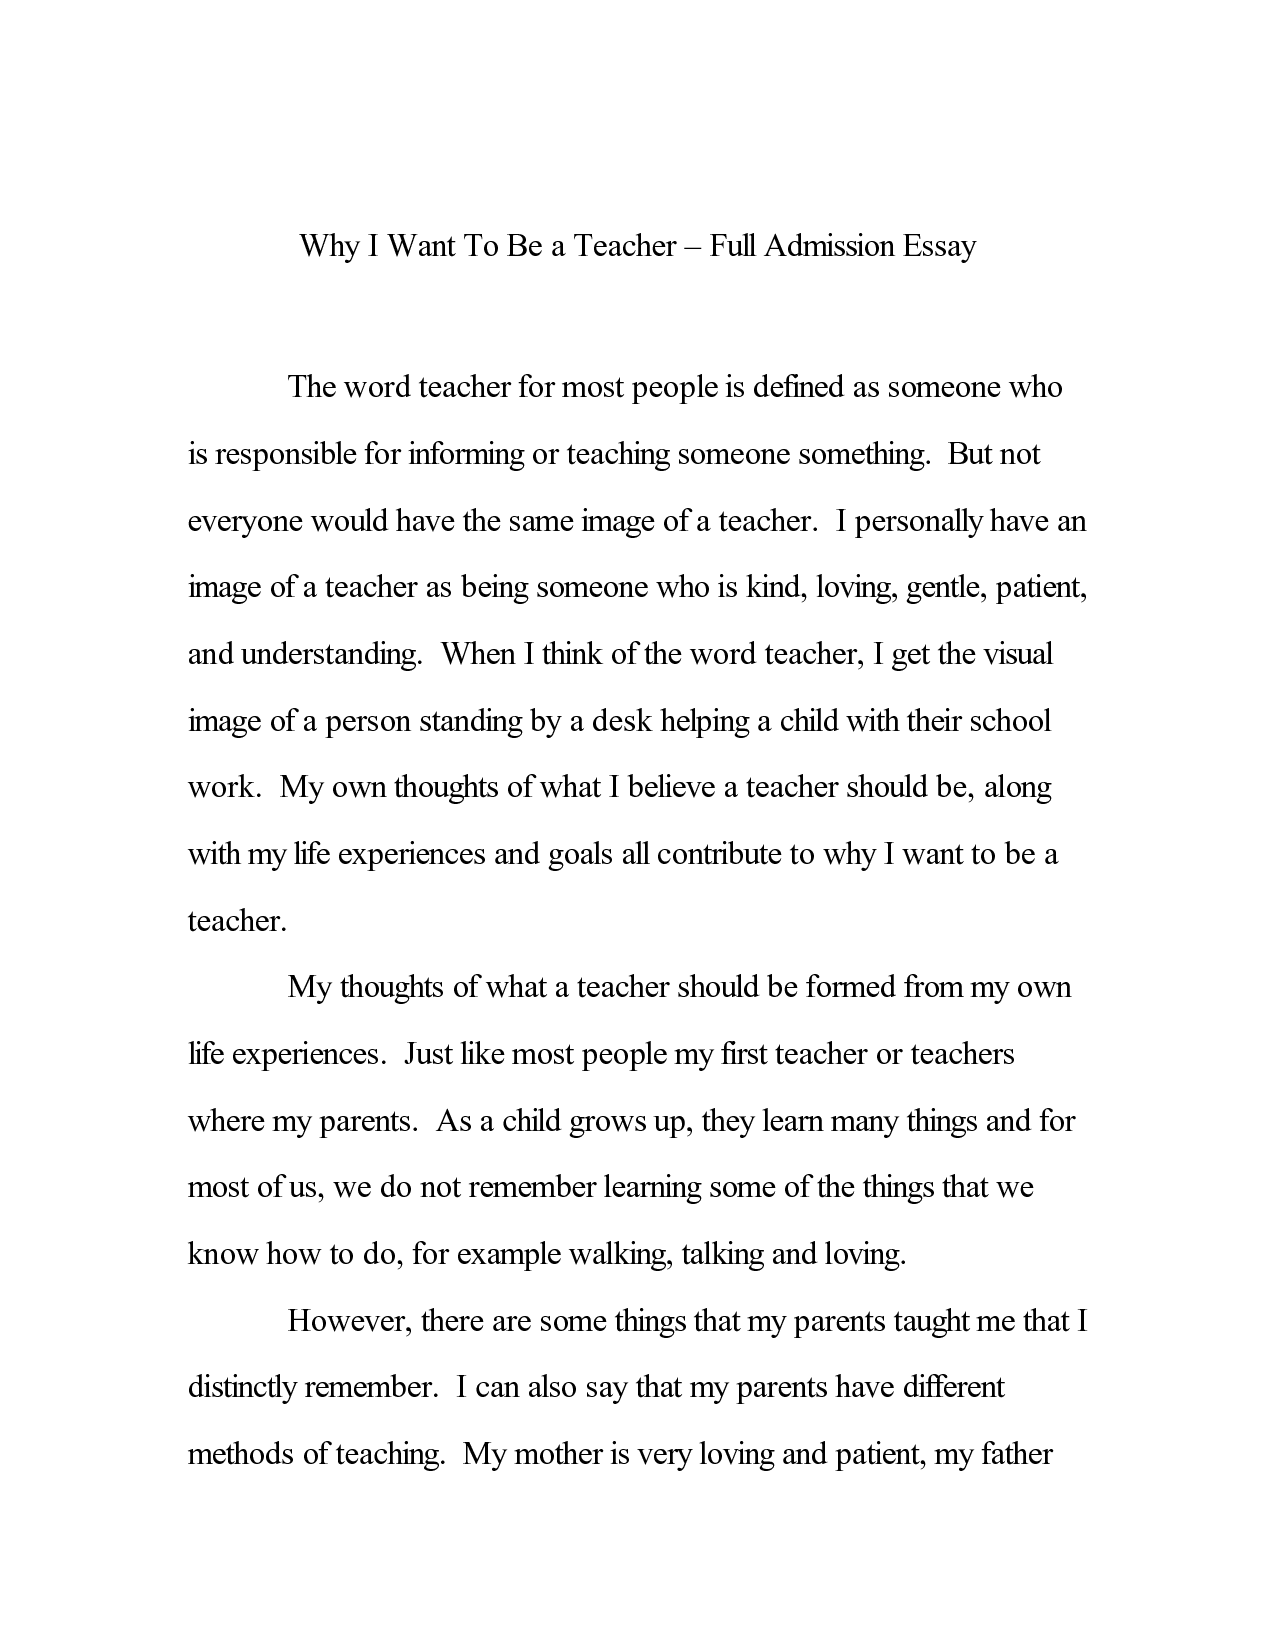 004 Writing College Application Essay Rare A Tips For Great How To Write That Stands Out Example Of Full